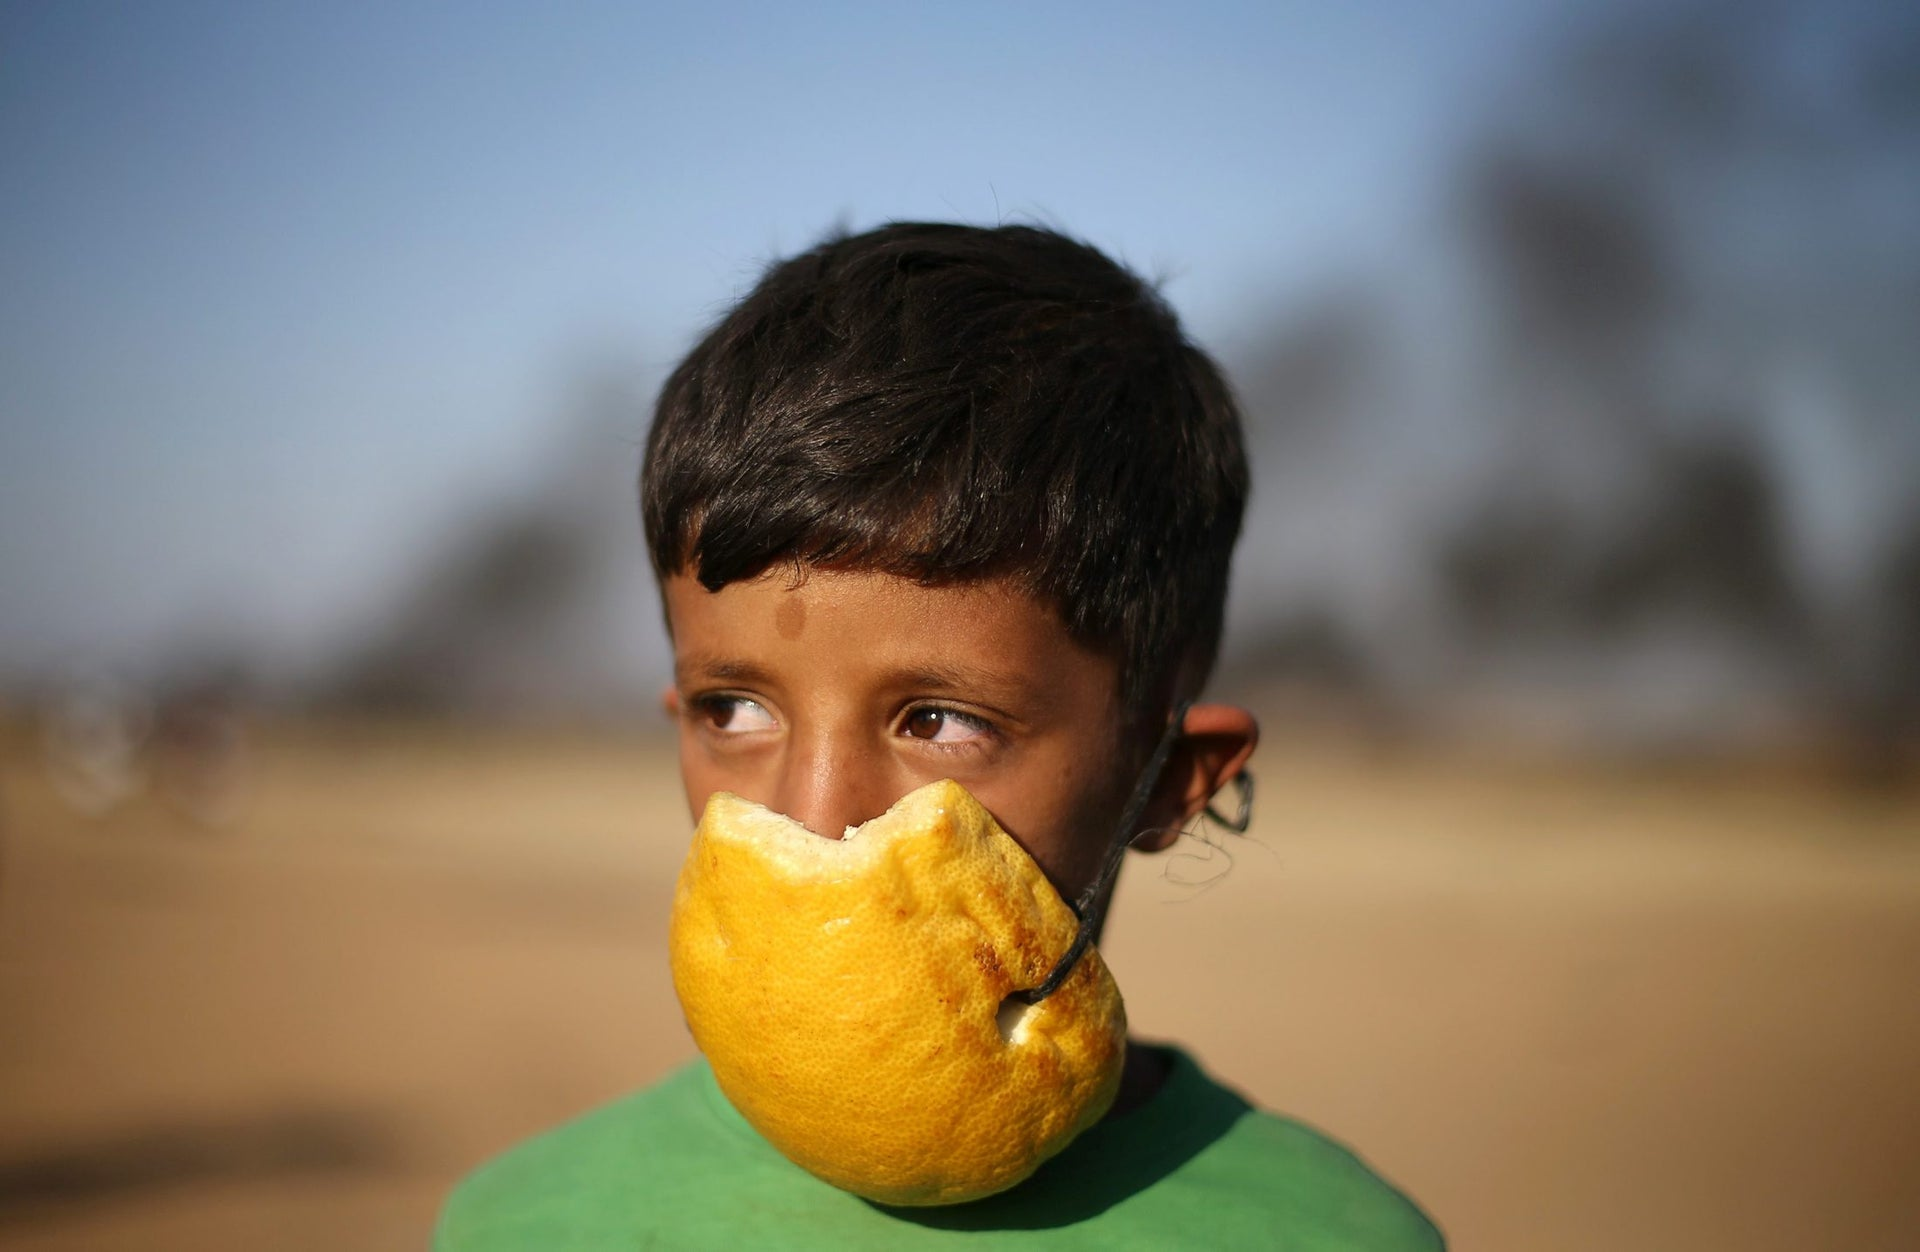 A Palestinian boy covers his nose with part of a pomelo to protect himself from inhaling tear gas fired by Israeli troops during a protest at the Israel-Gaza border in the southern Gaza Strip April 9, 2018. Picture taken April 9, 2018.